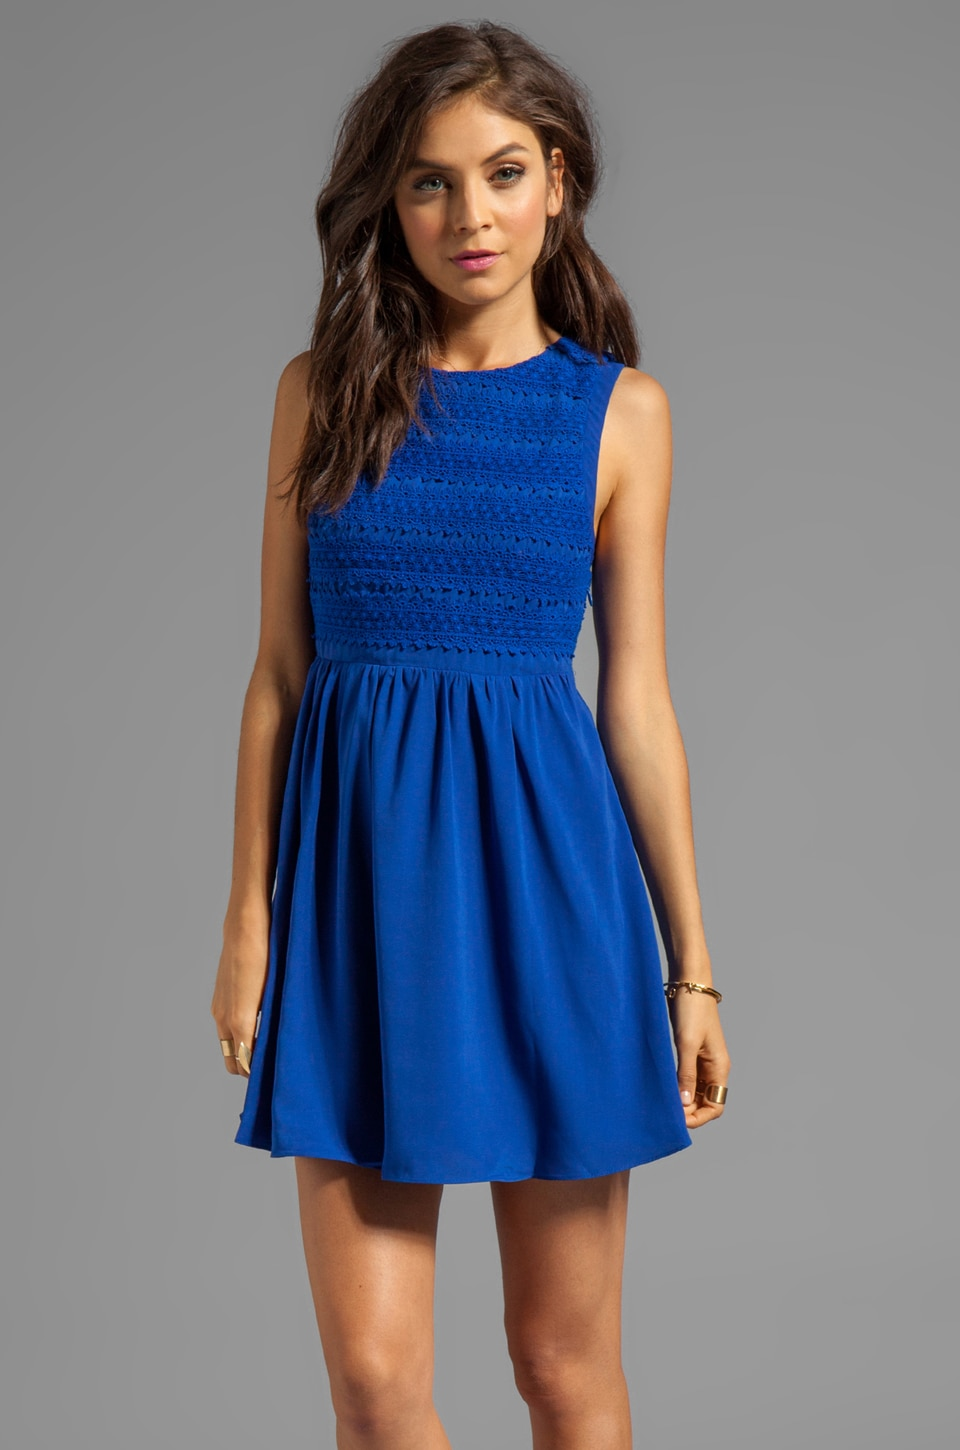 Ladakh Dream Lover Dress in Cobalt